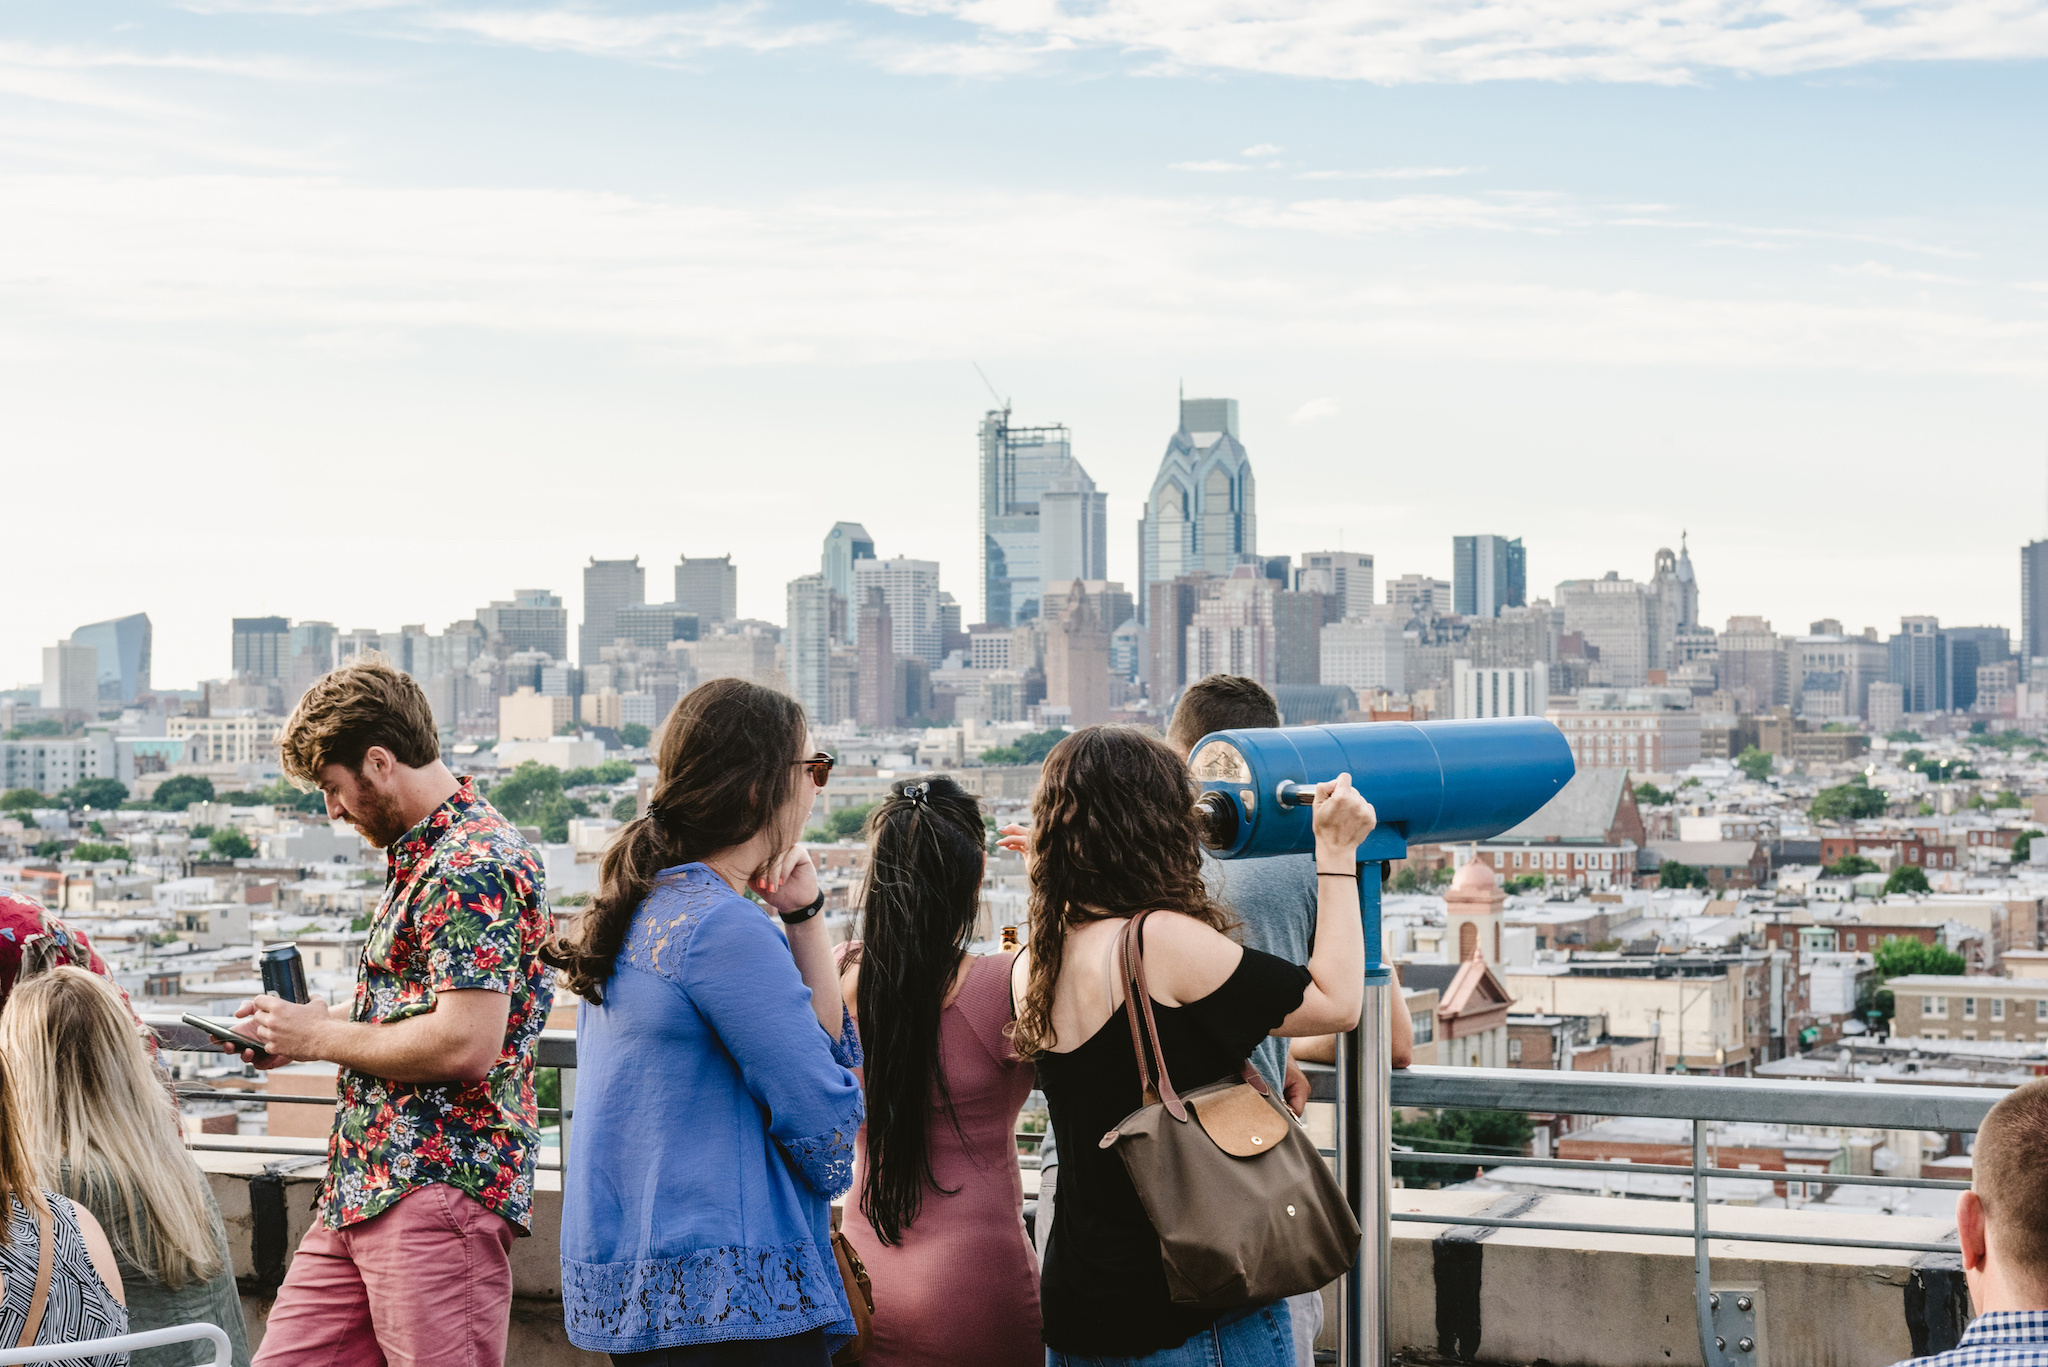 Rooftop bars with incredible views